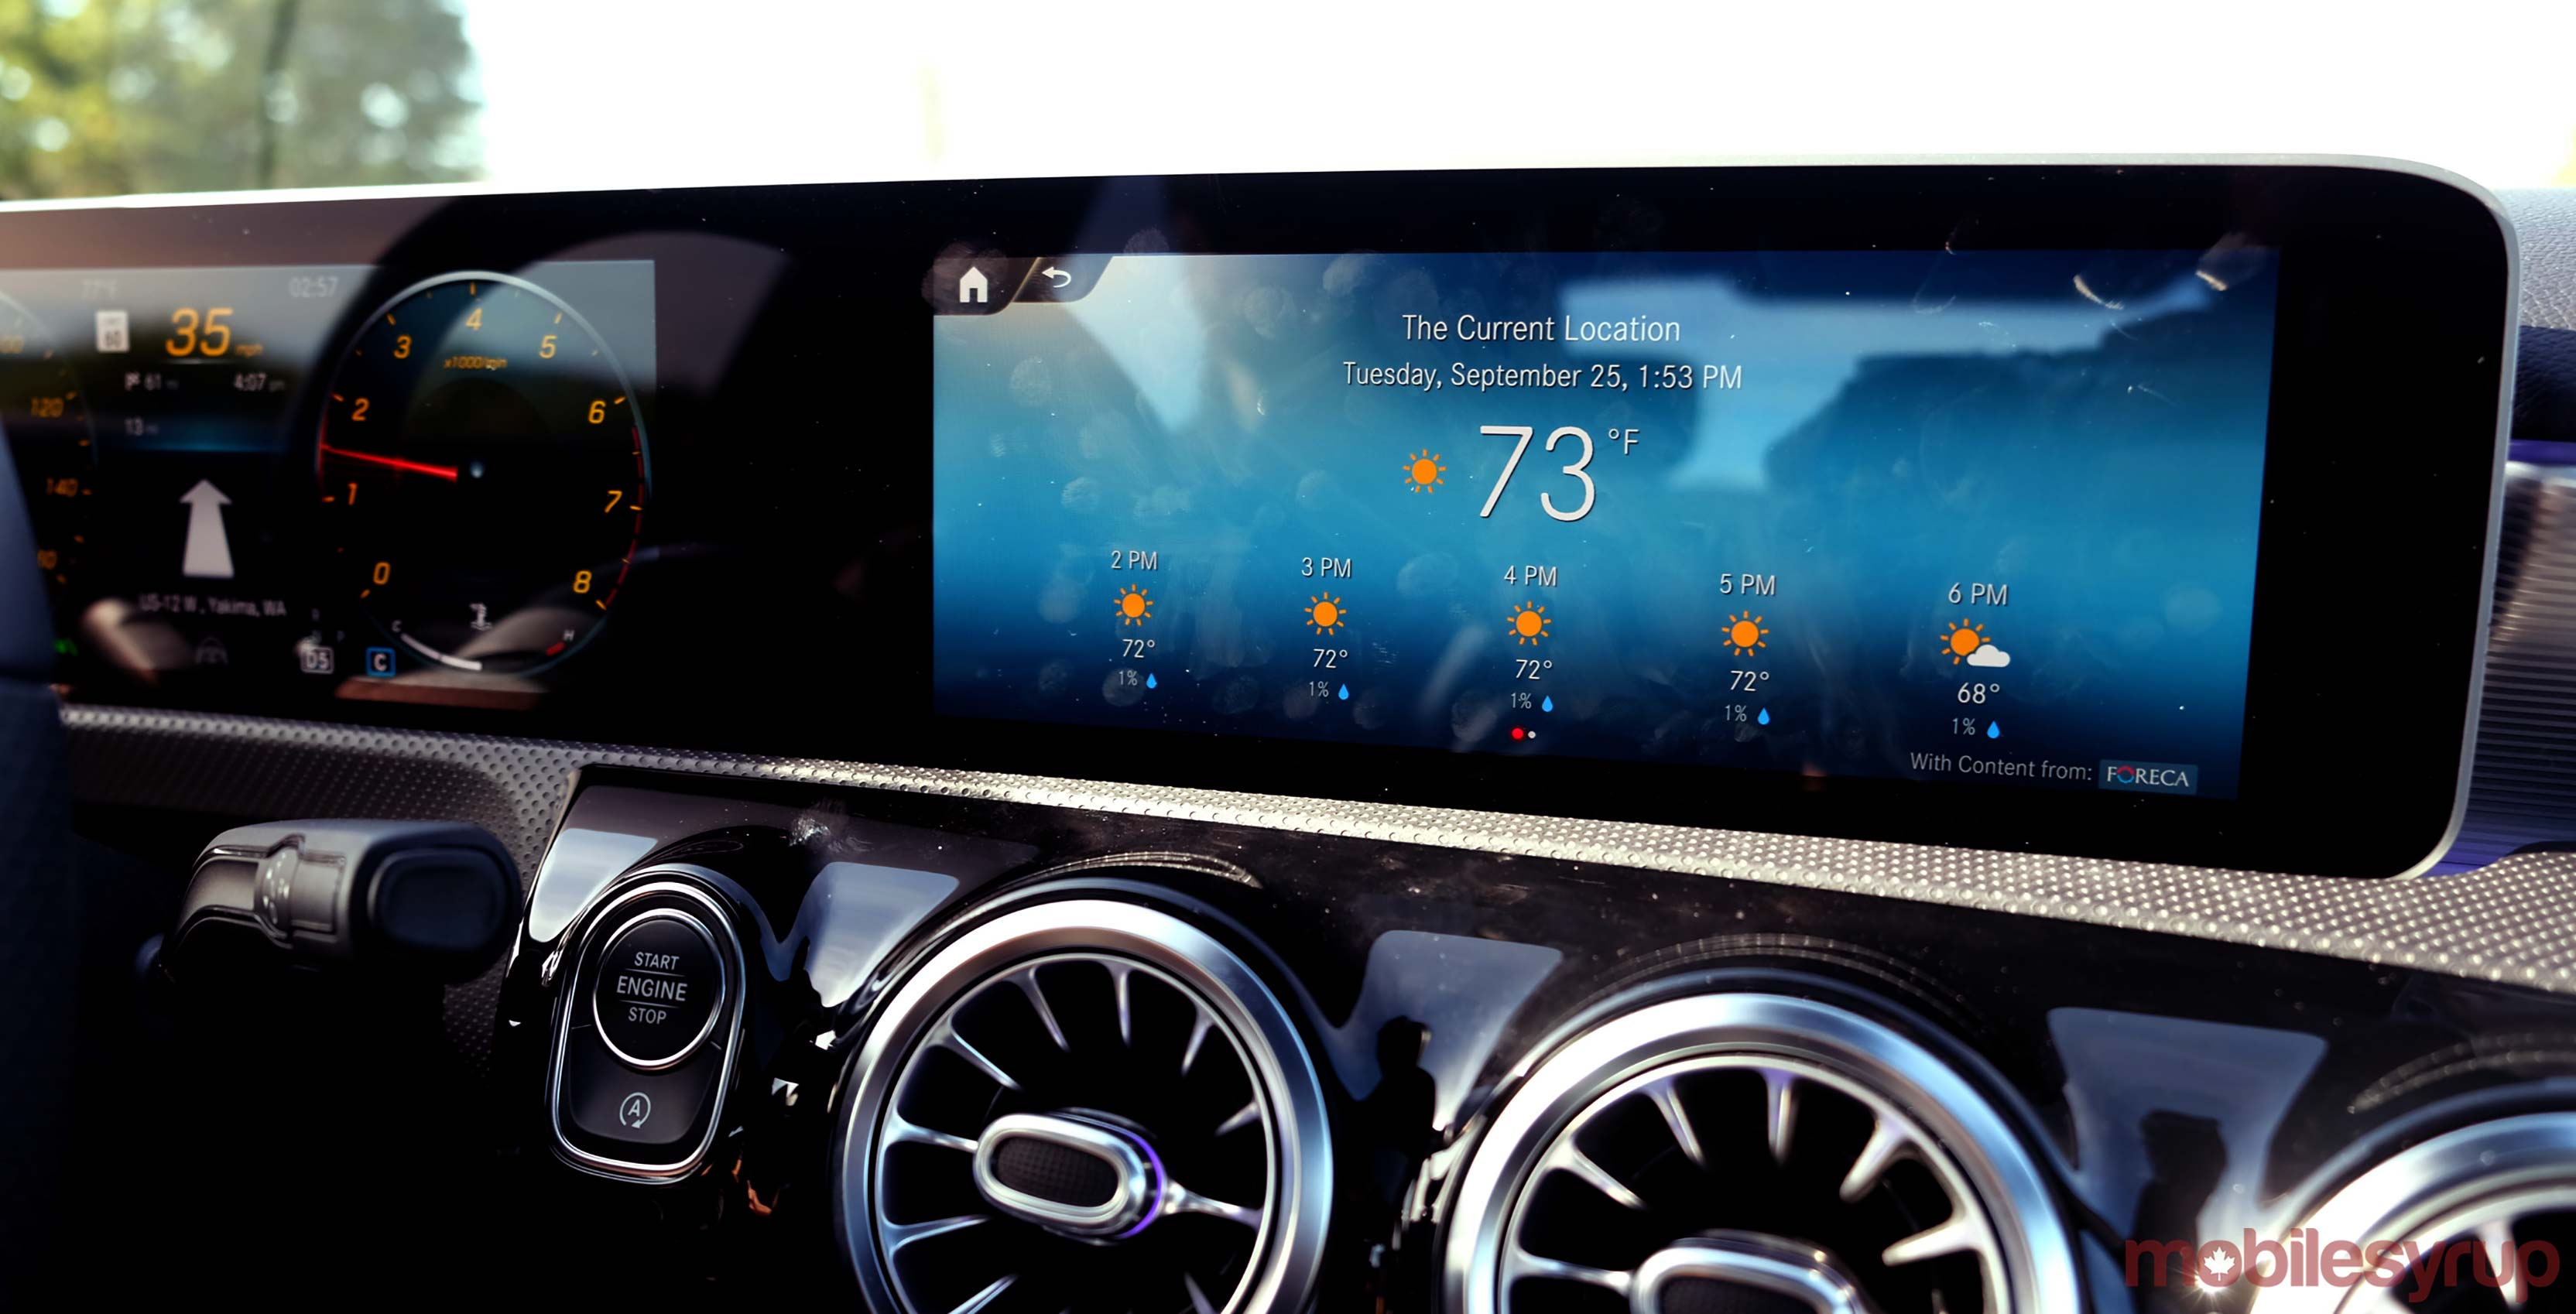 mercedes-benz mbux infotainment system hands-on: feeling ambitious